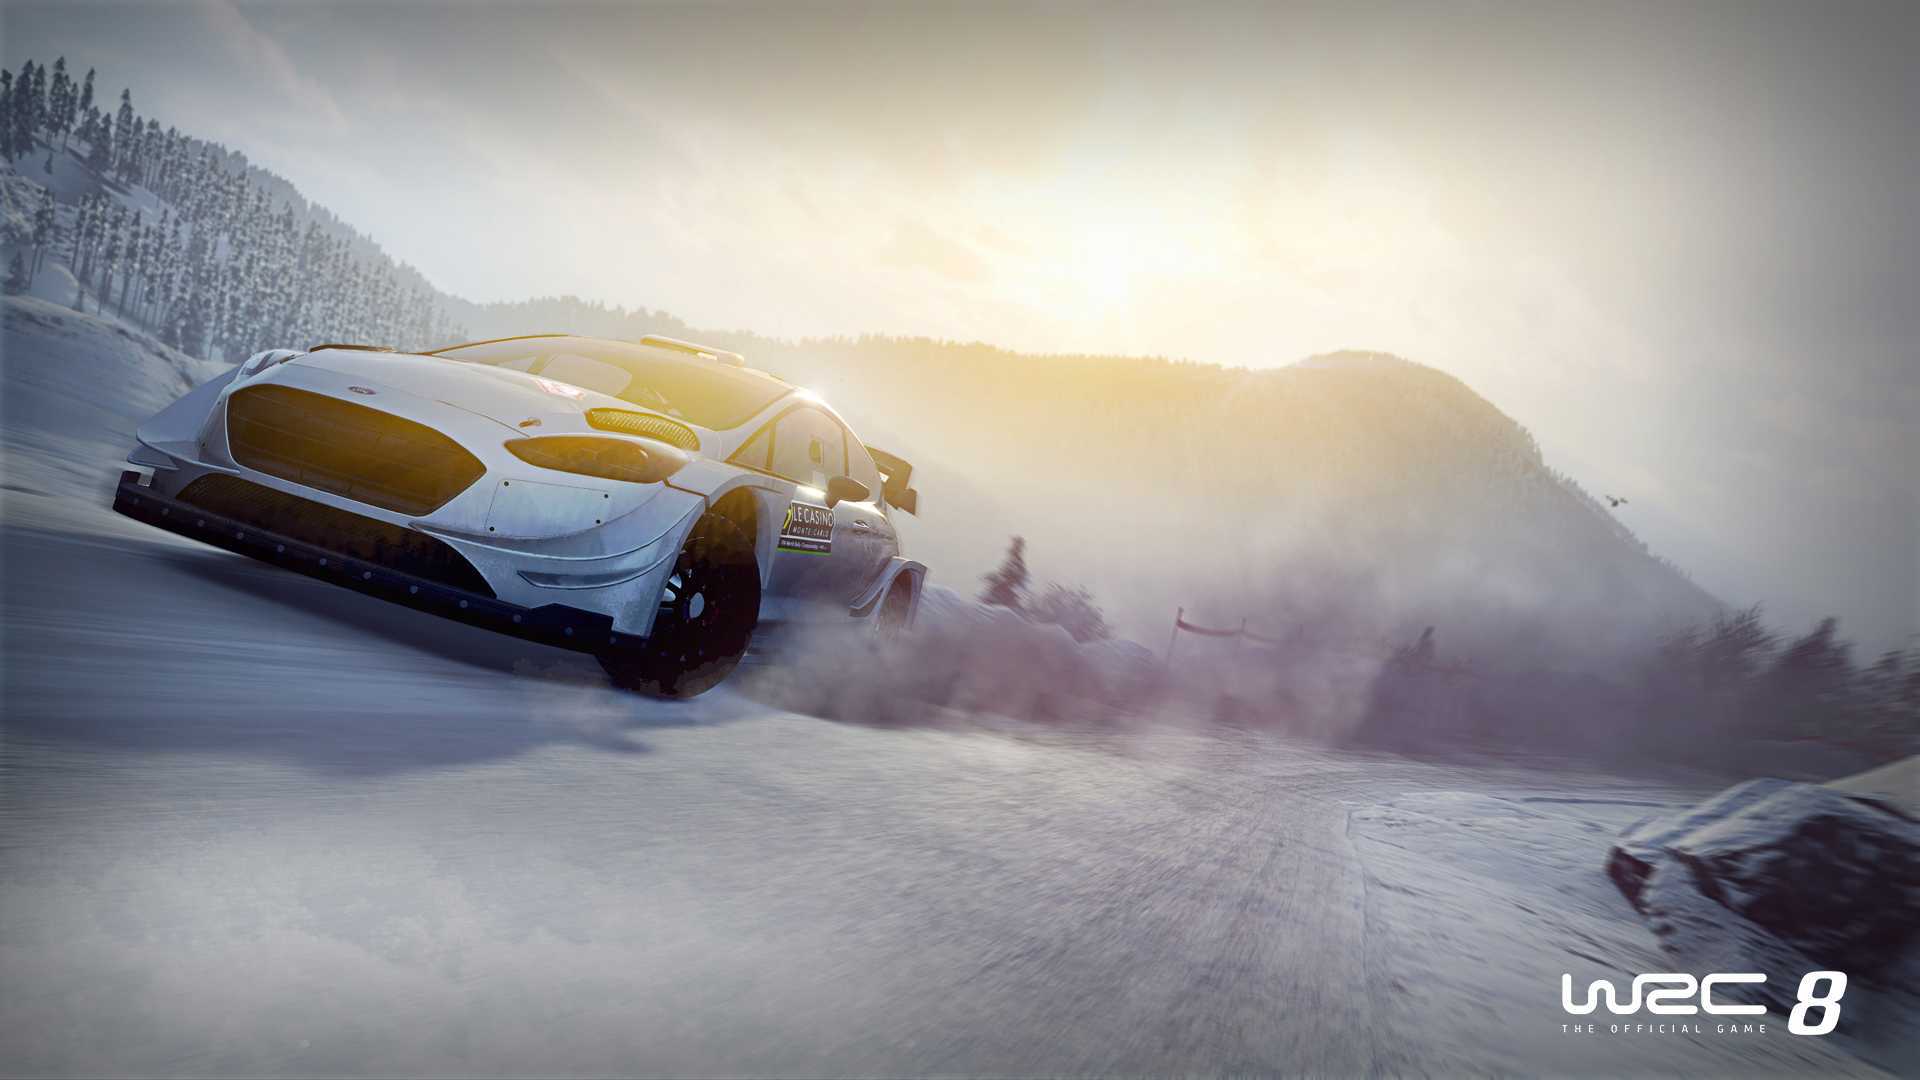 wrc-8-in-game-screenshot.jpg